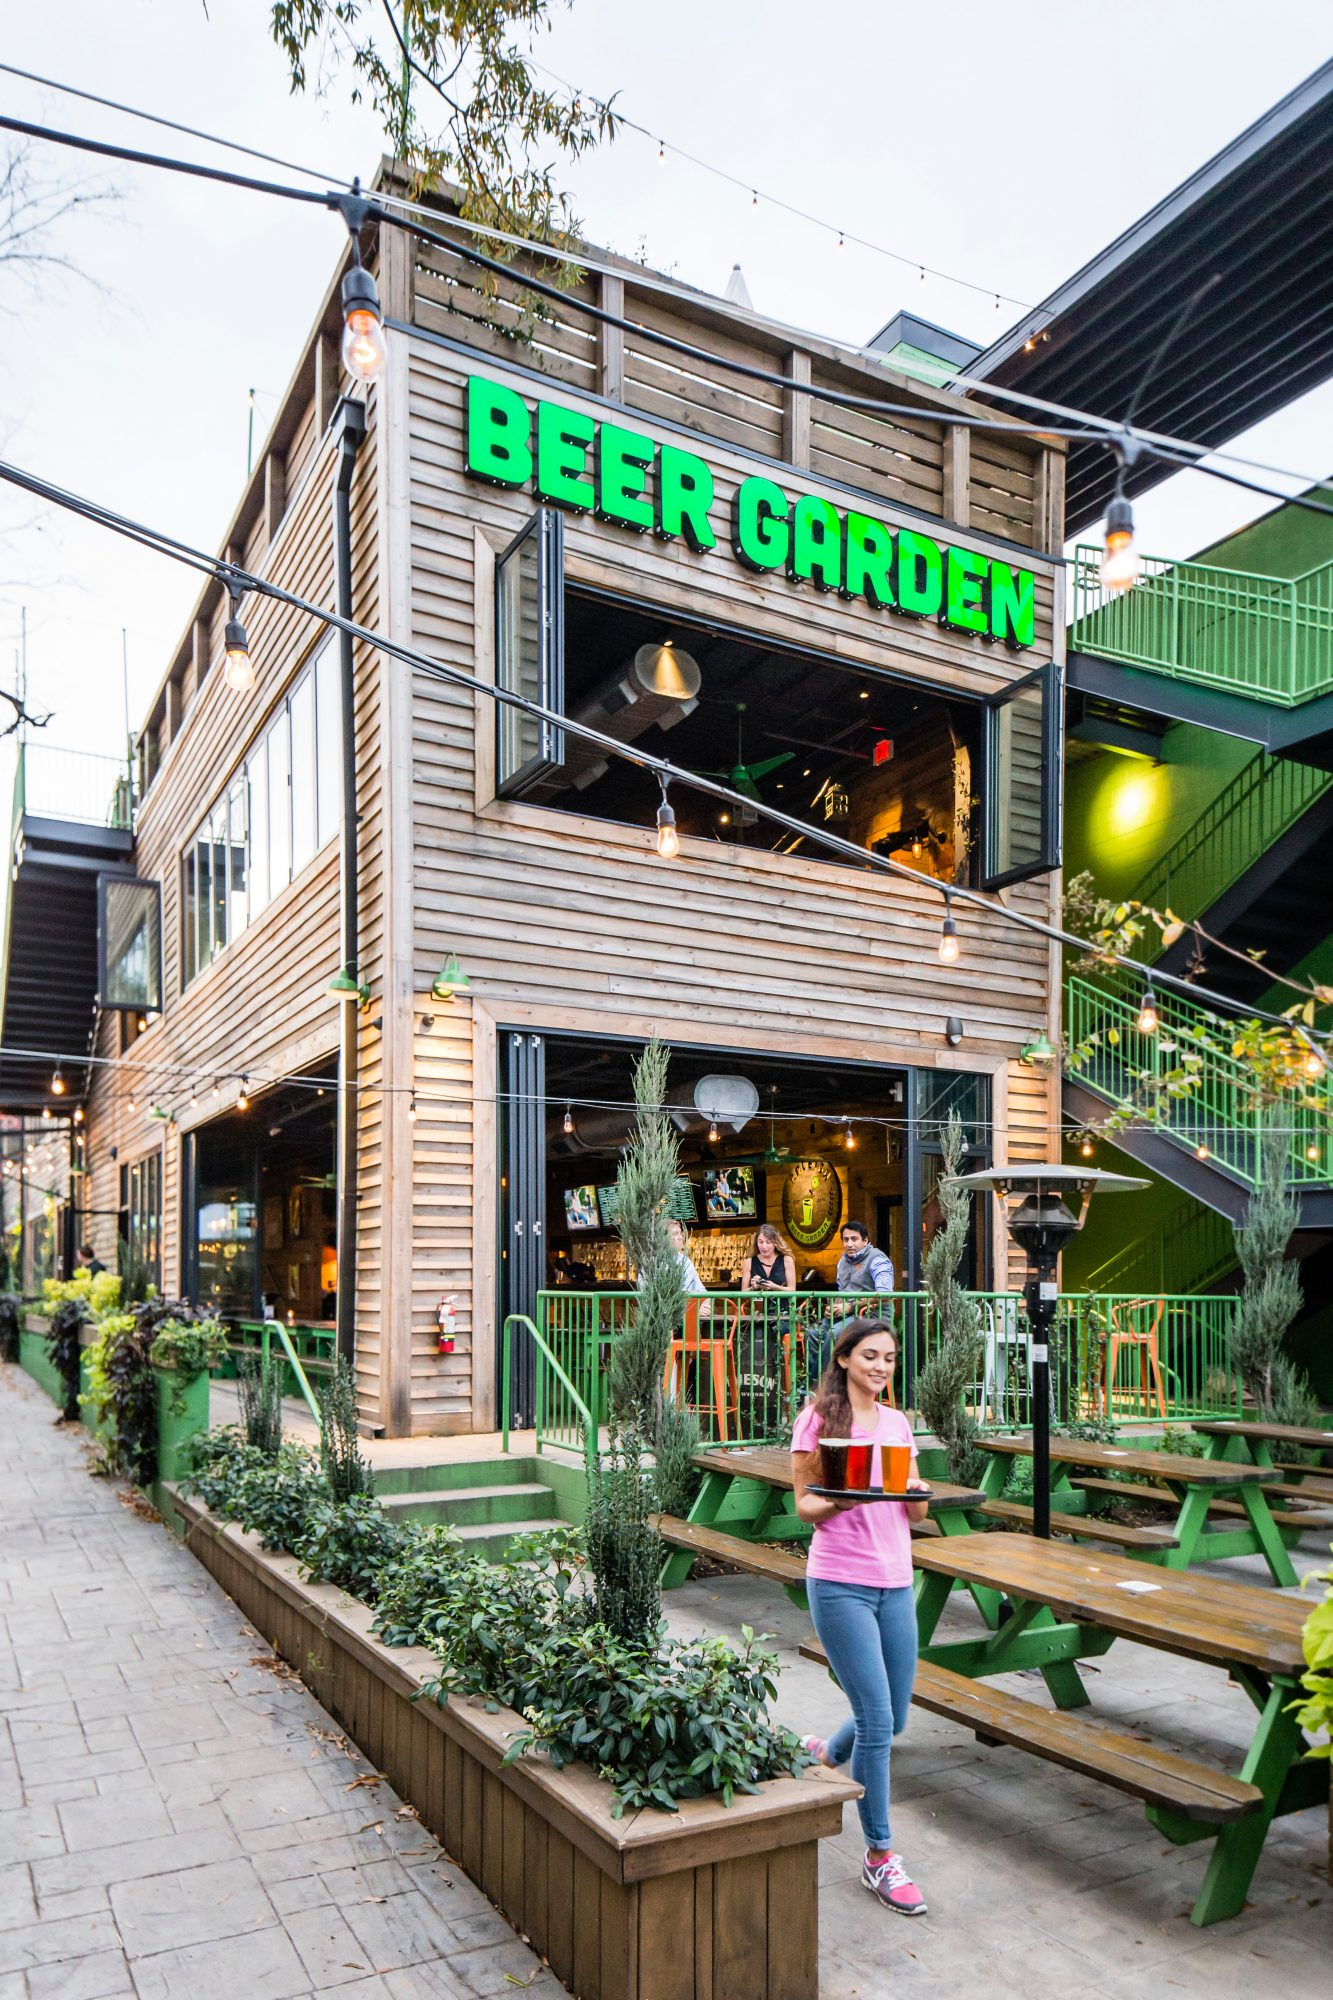 27. The Triangle Has a Beer Garden